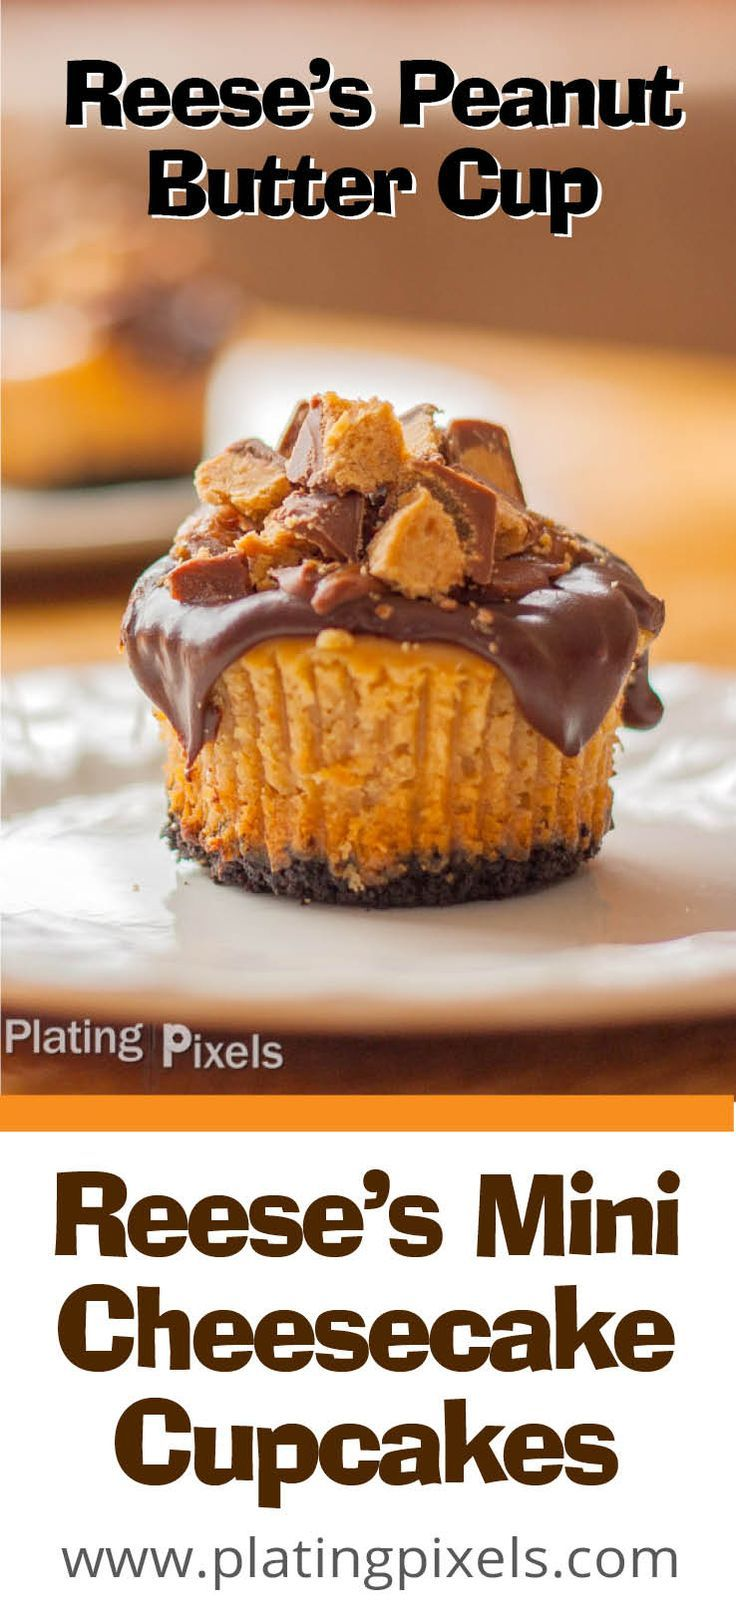 Reese's Peanut Butter Cup Mini Cheesecake Cupcakes with Oreo cookie crust by Plating Pixels. Rich silky peanut butter cheesecake with chocolate ganache topping and Reese's cups by Plating Pixels - www.platingpixels.com